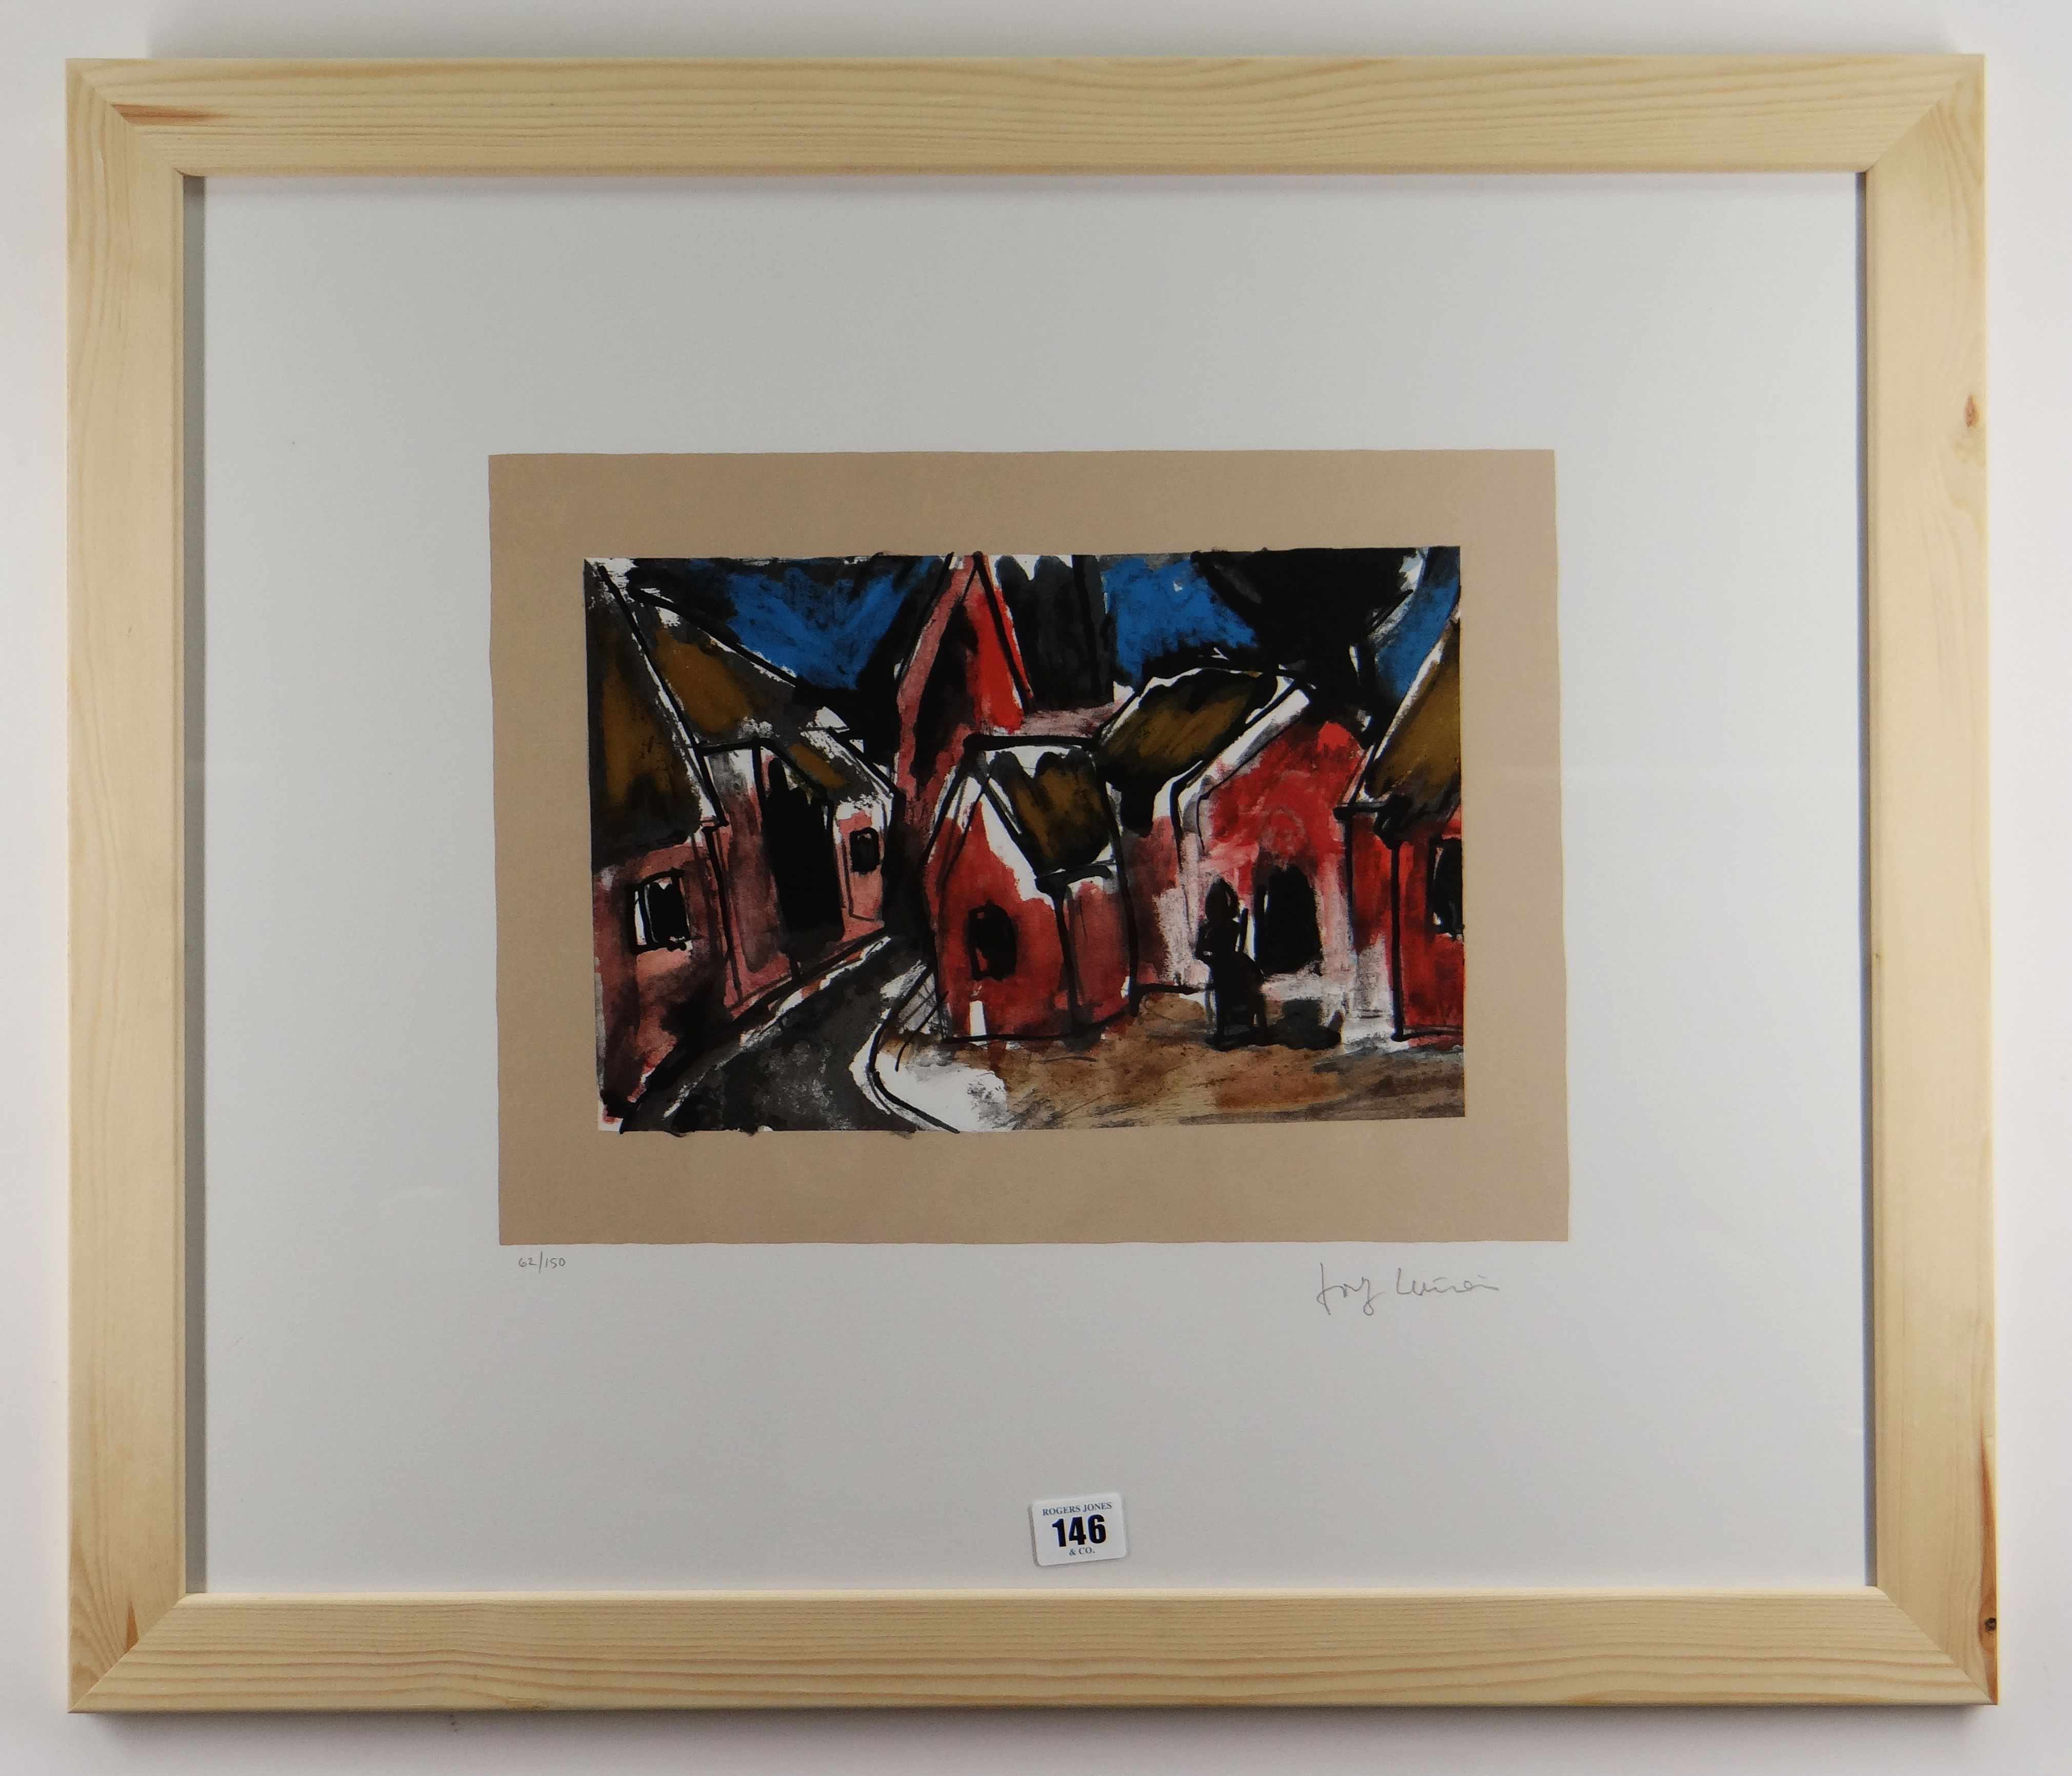 JOSEF HERMAN OBE RA limited edition (62/150) colour print - figure seated in village with church, - Image 2 of 2